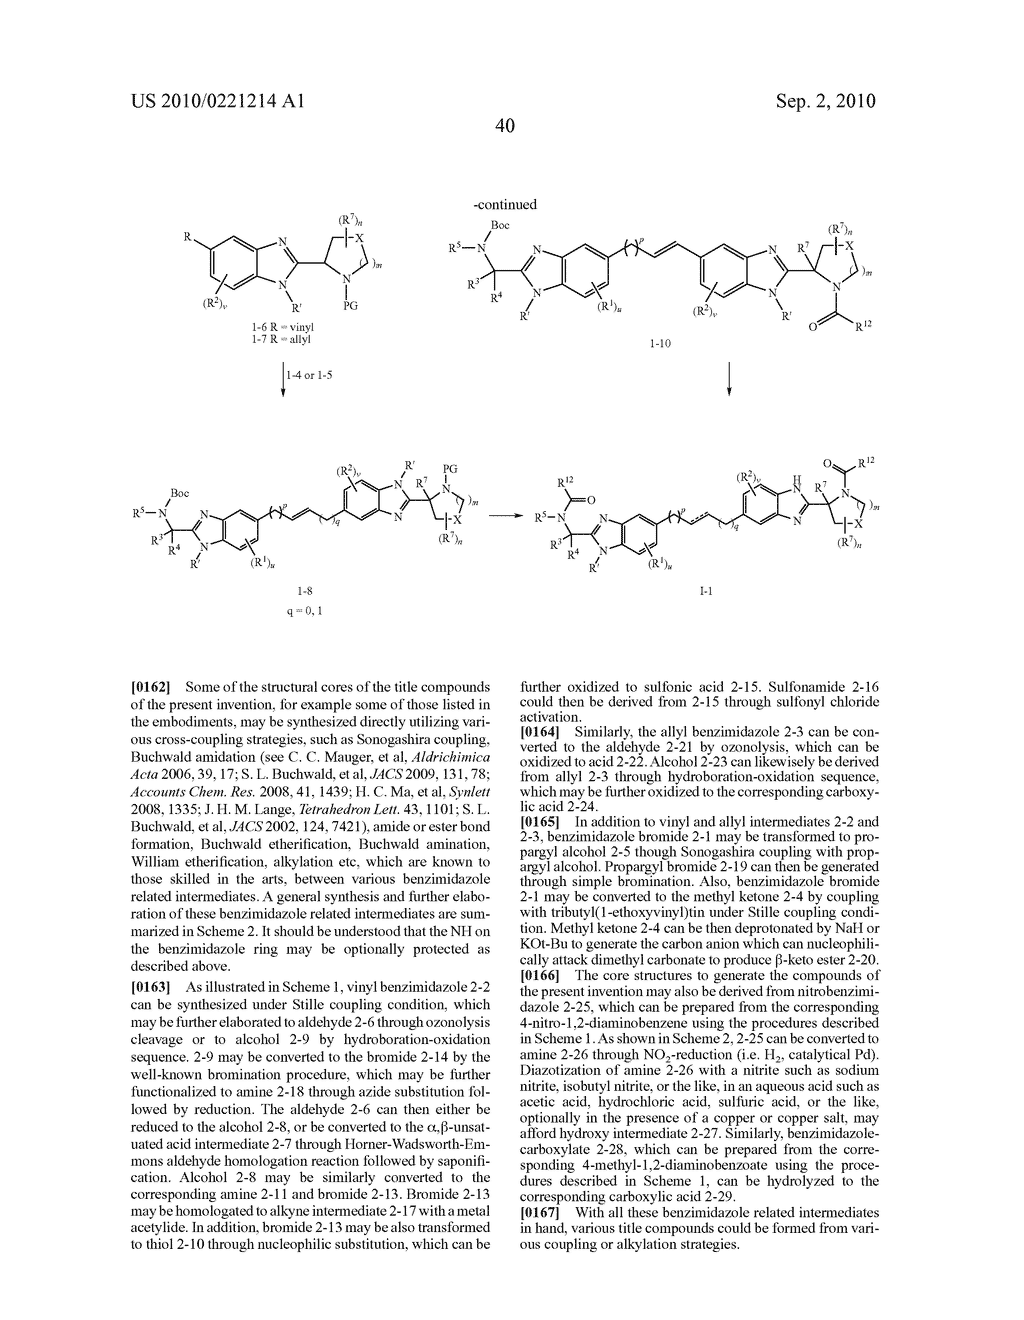 LINKED DIBENZIMIDAZOLE DERIVATIVES - diagram, schematic, and image 41